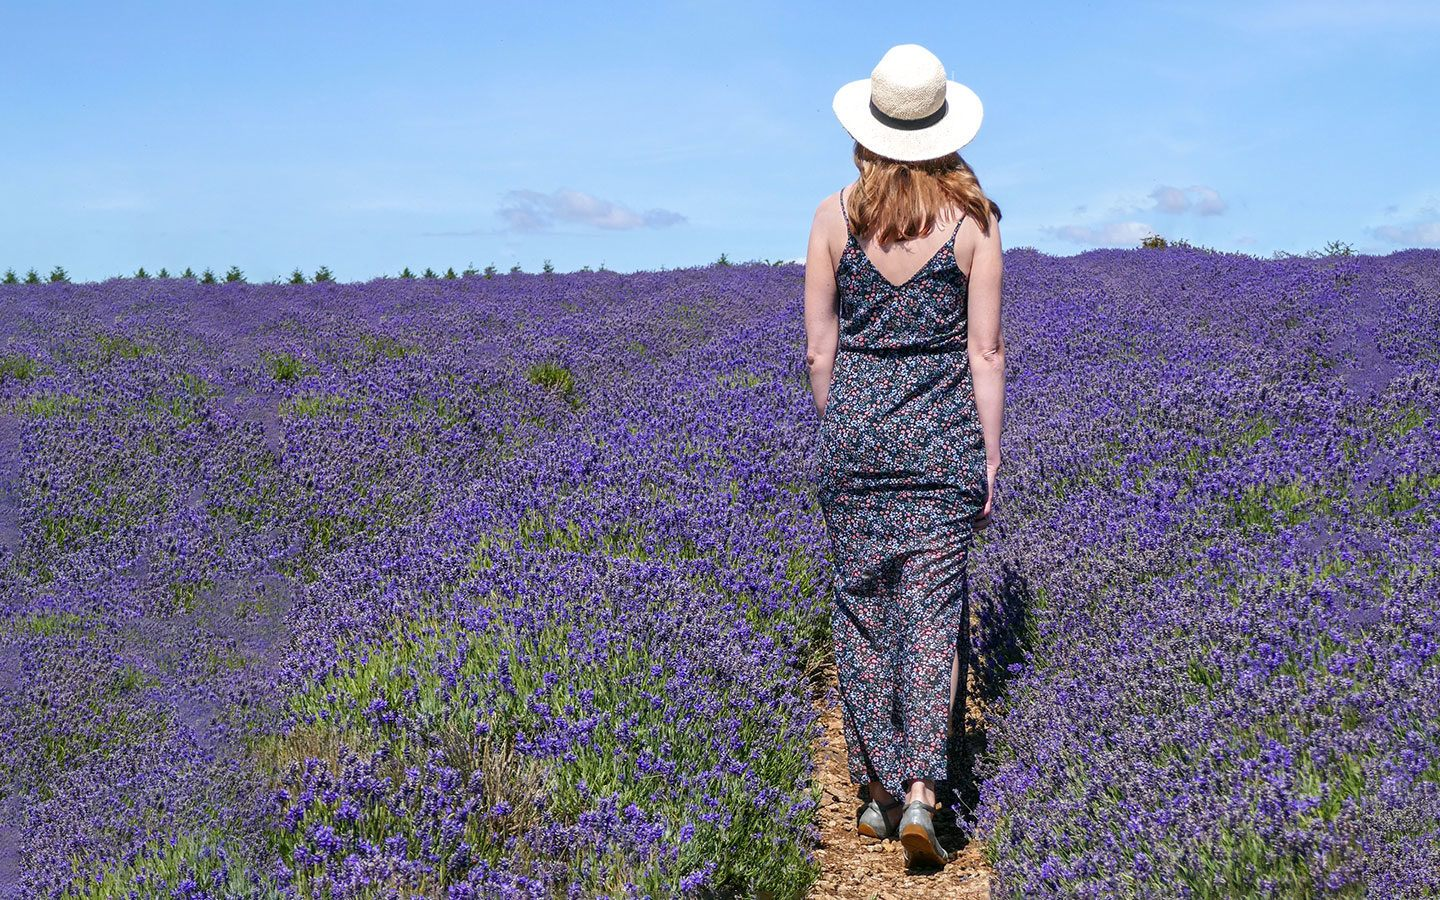 The Cotswold Lavender fields